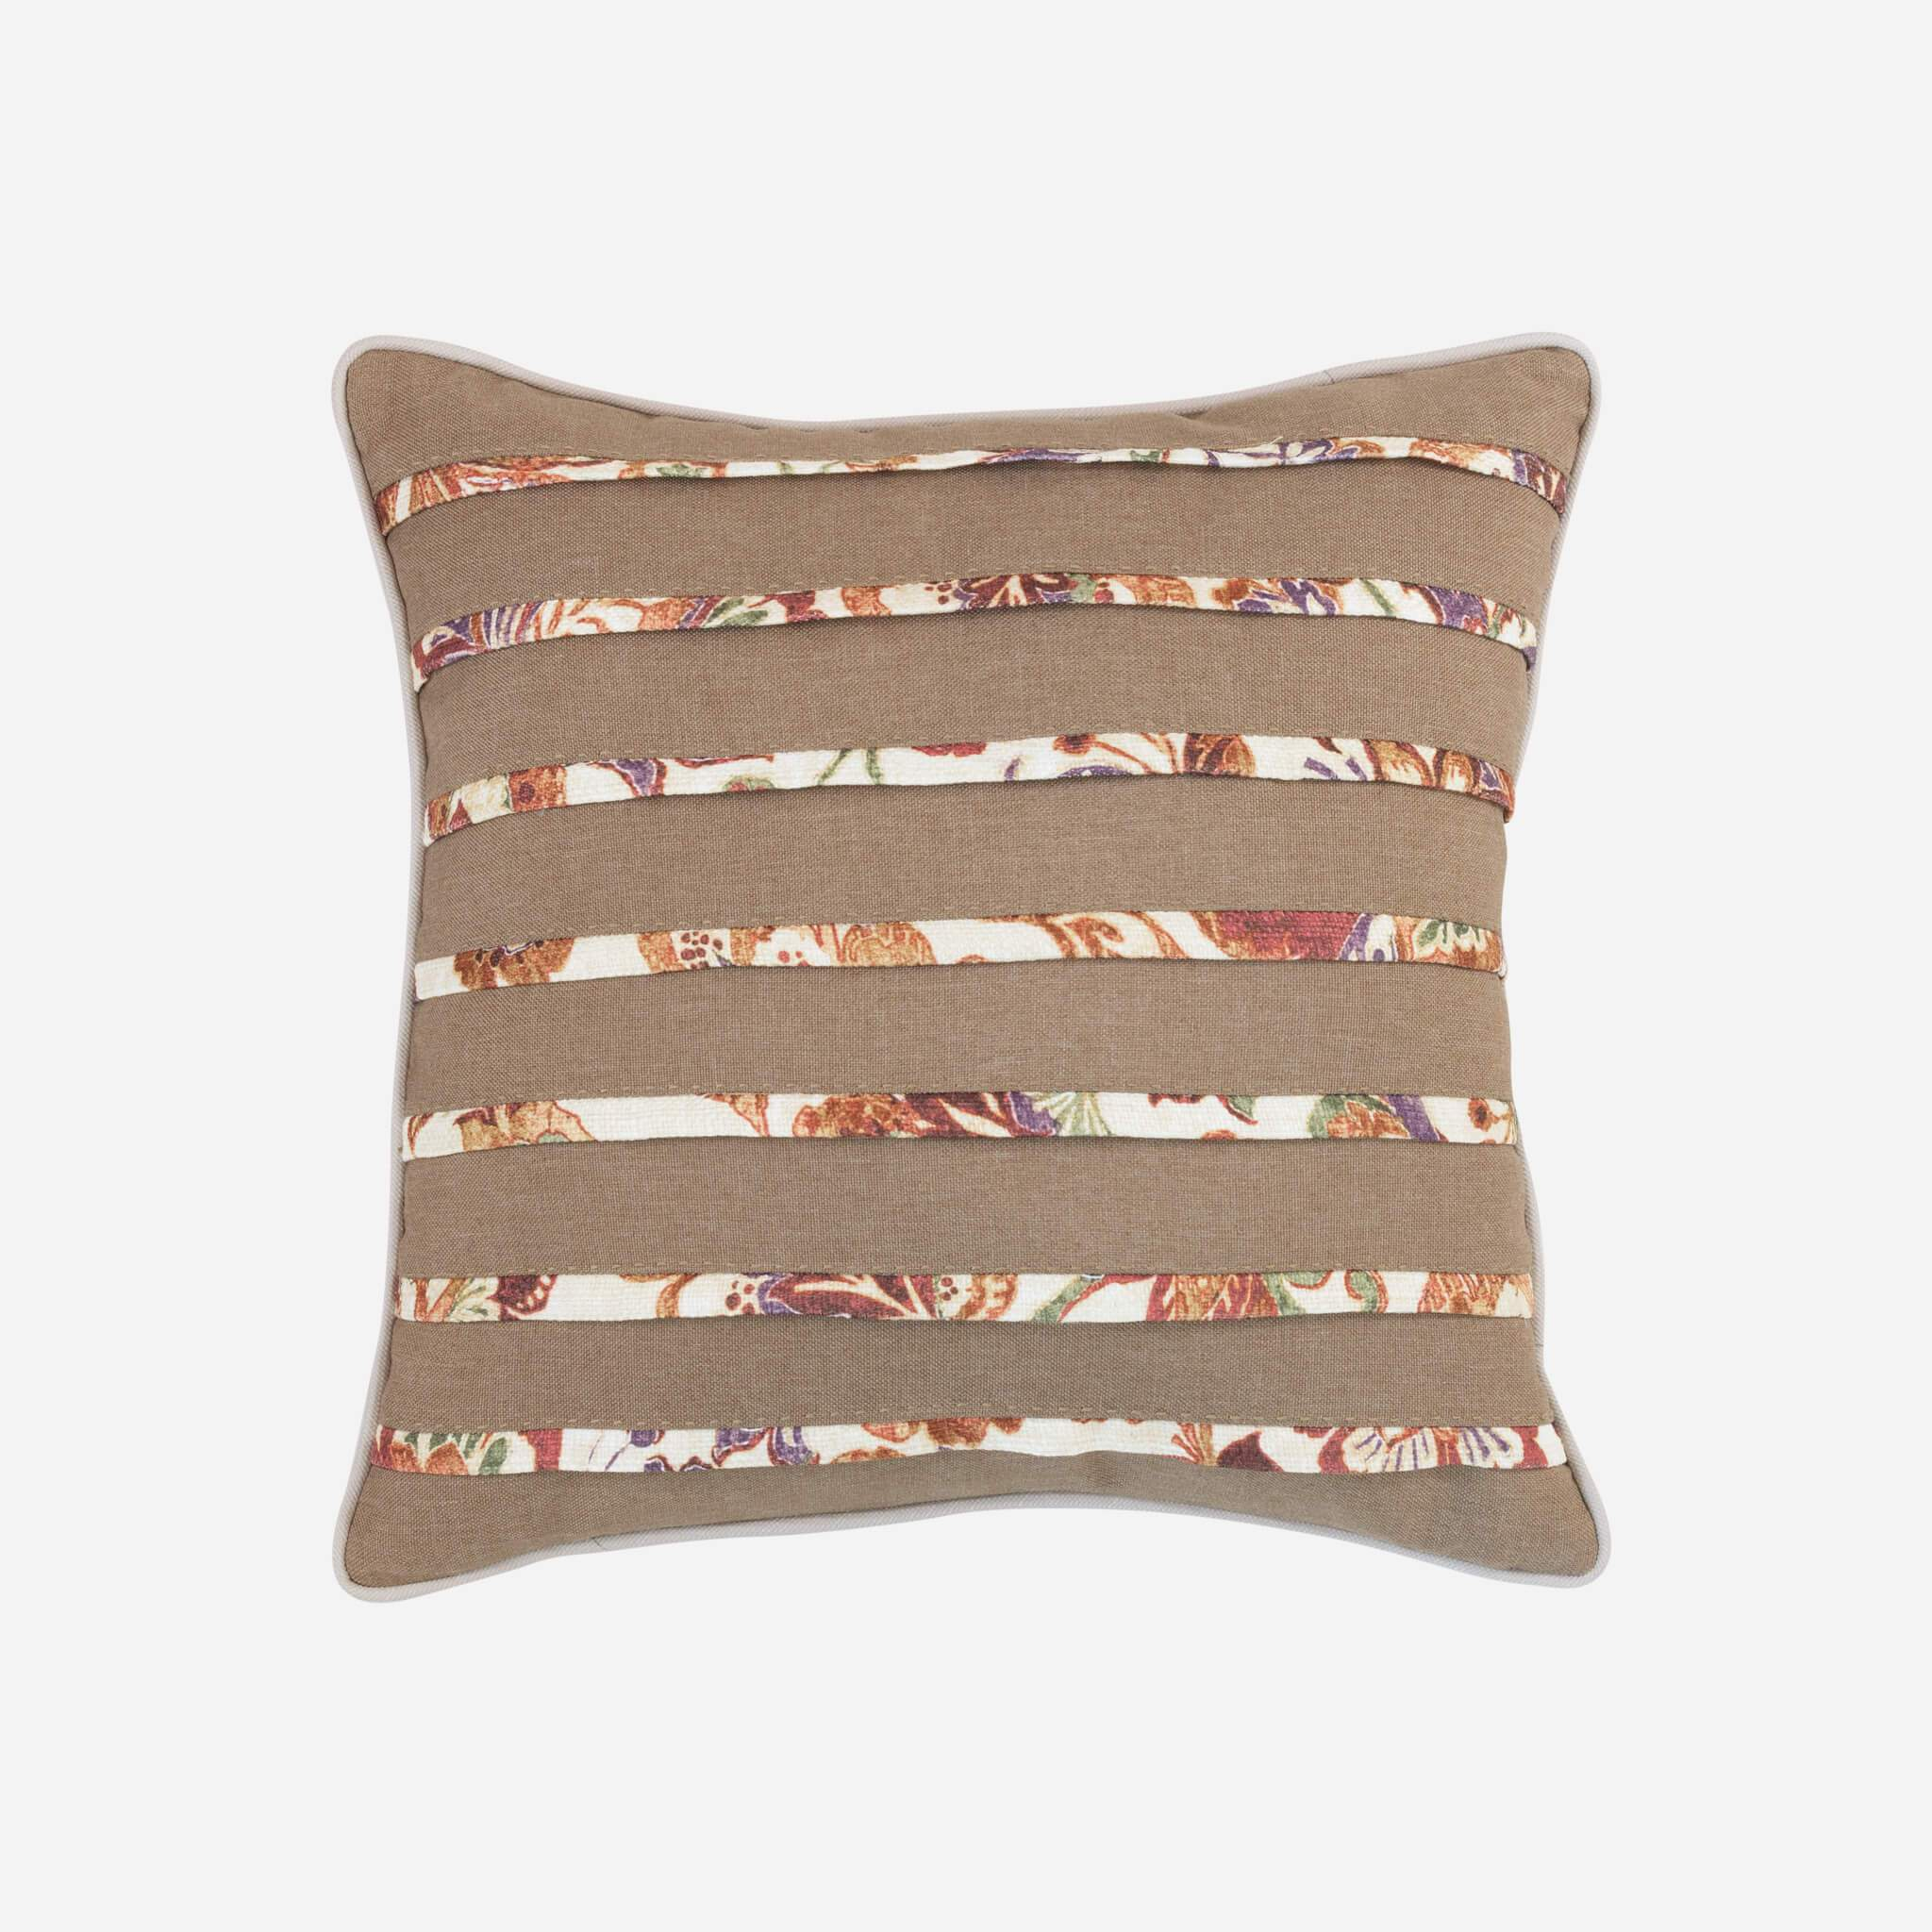 Decorative Pillows Croscill Home